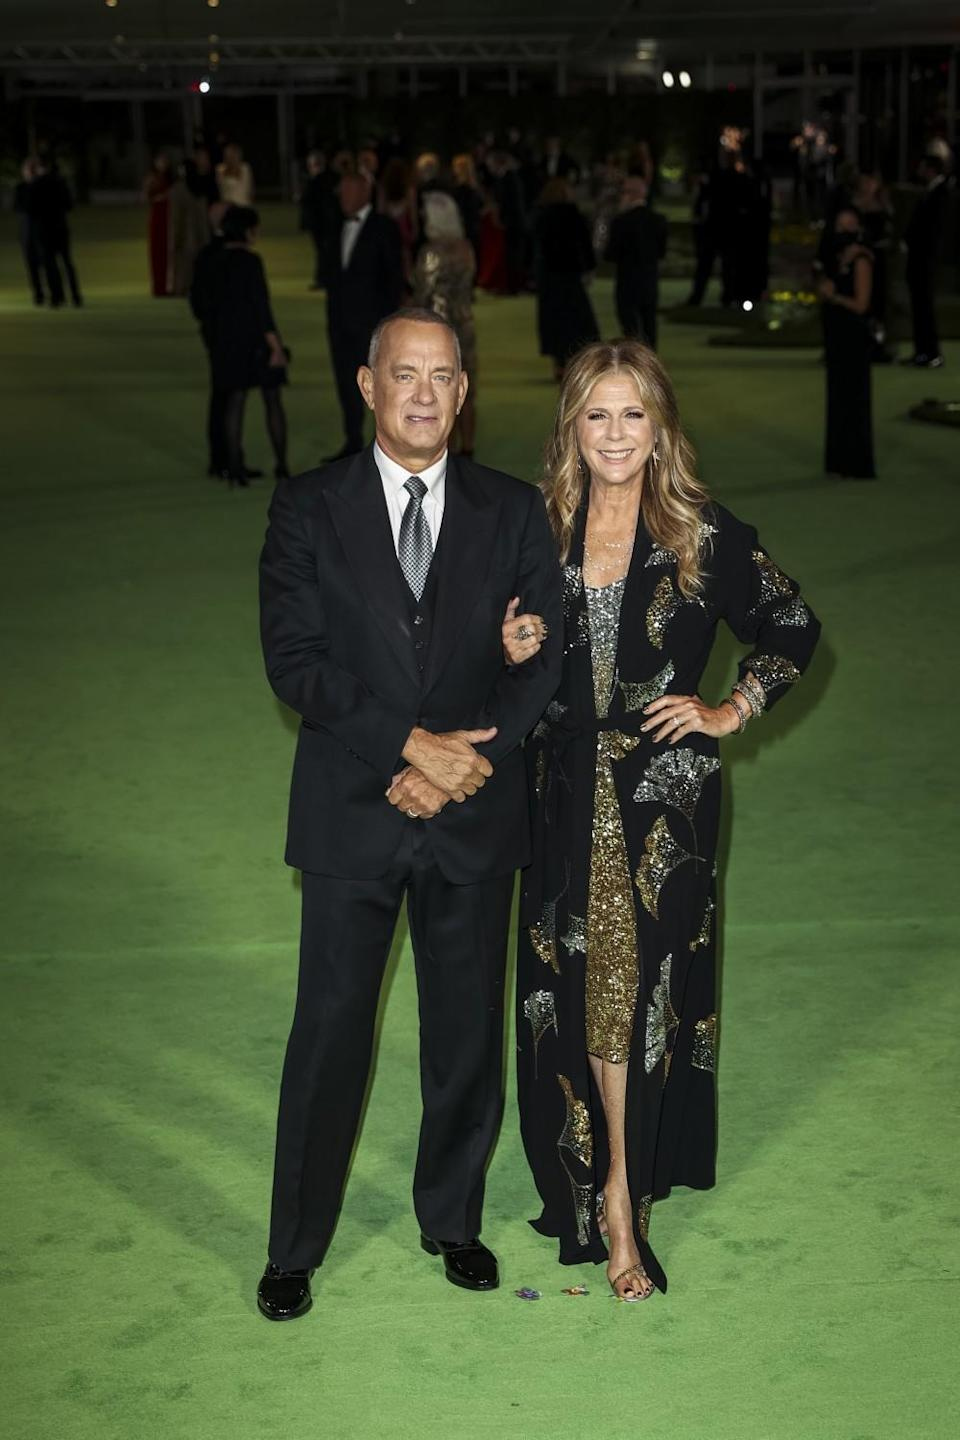 A man in a black suit and a woman in a sparkly gown posing on the green carpet